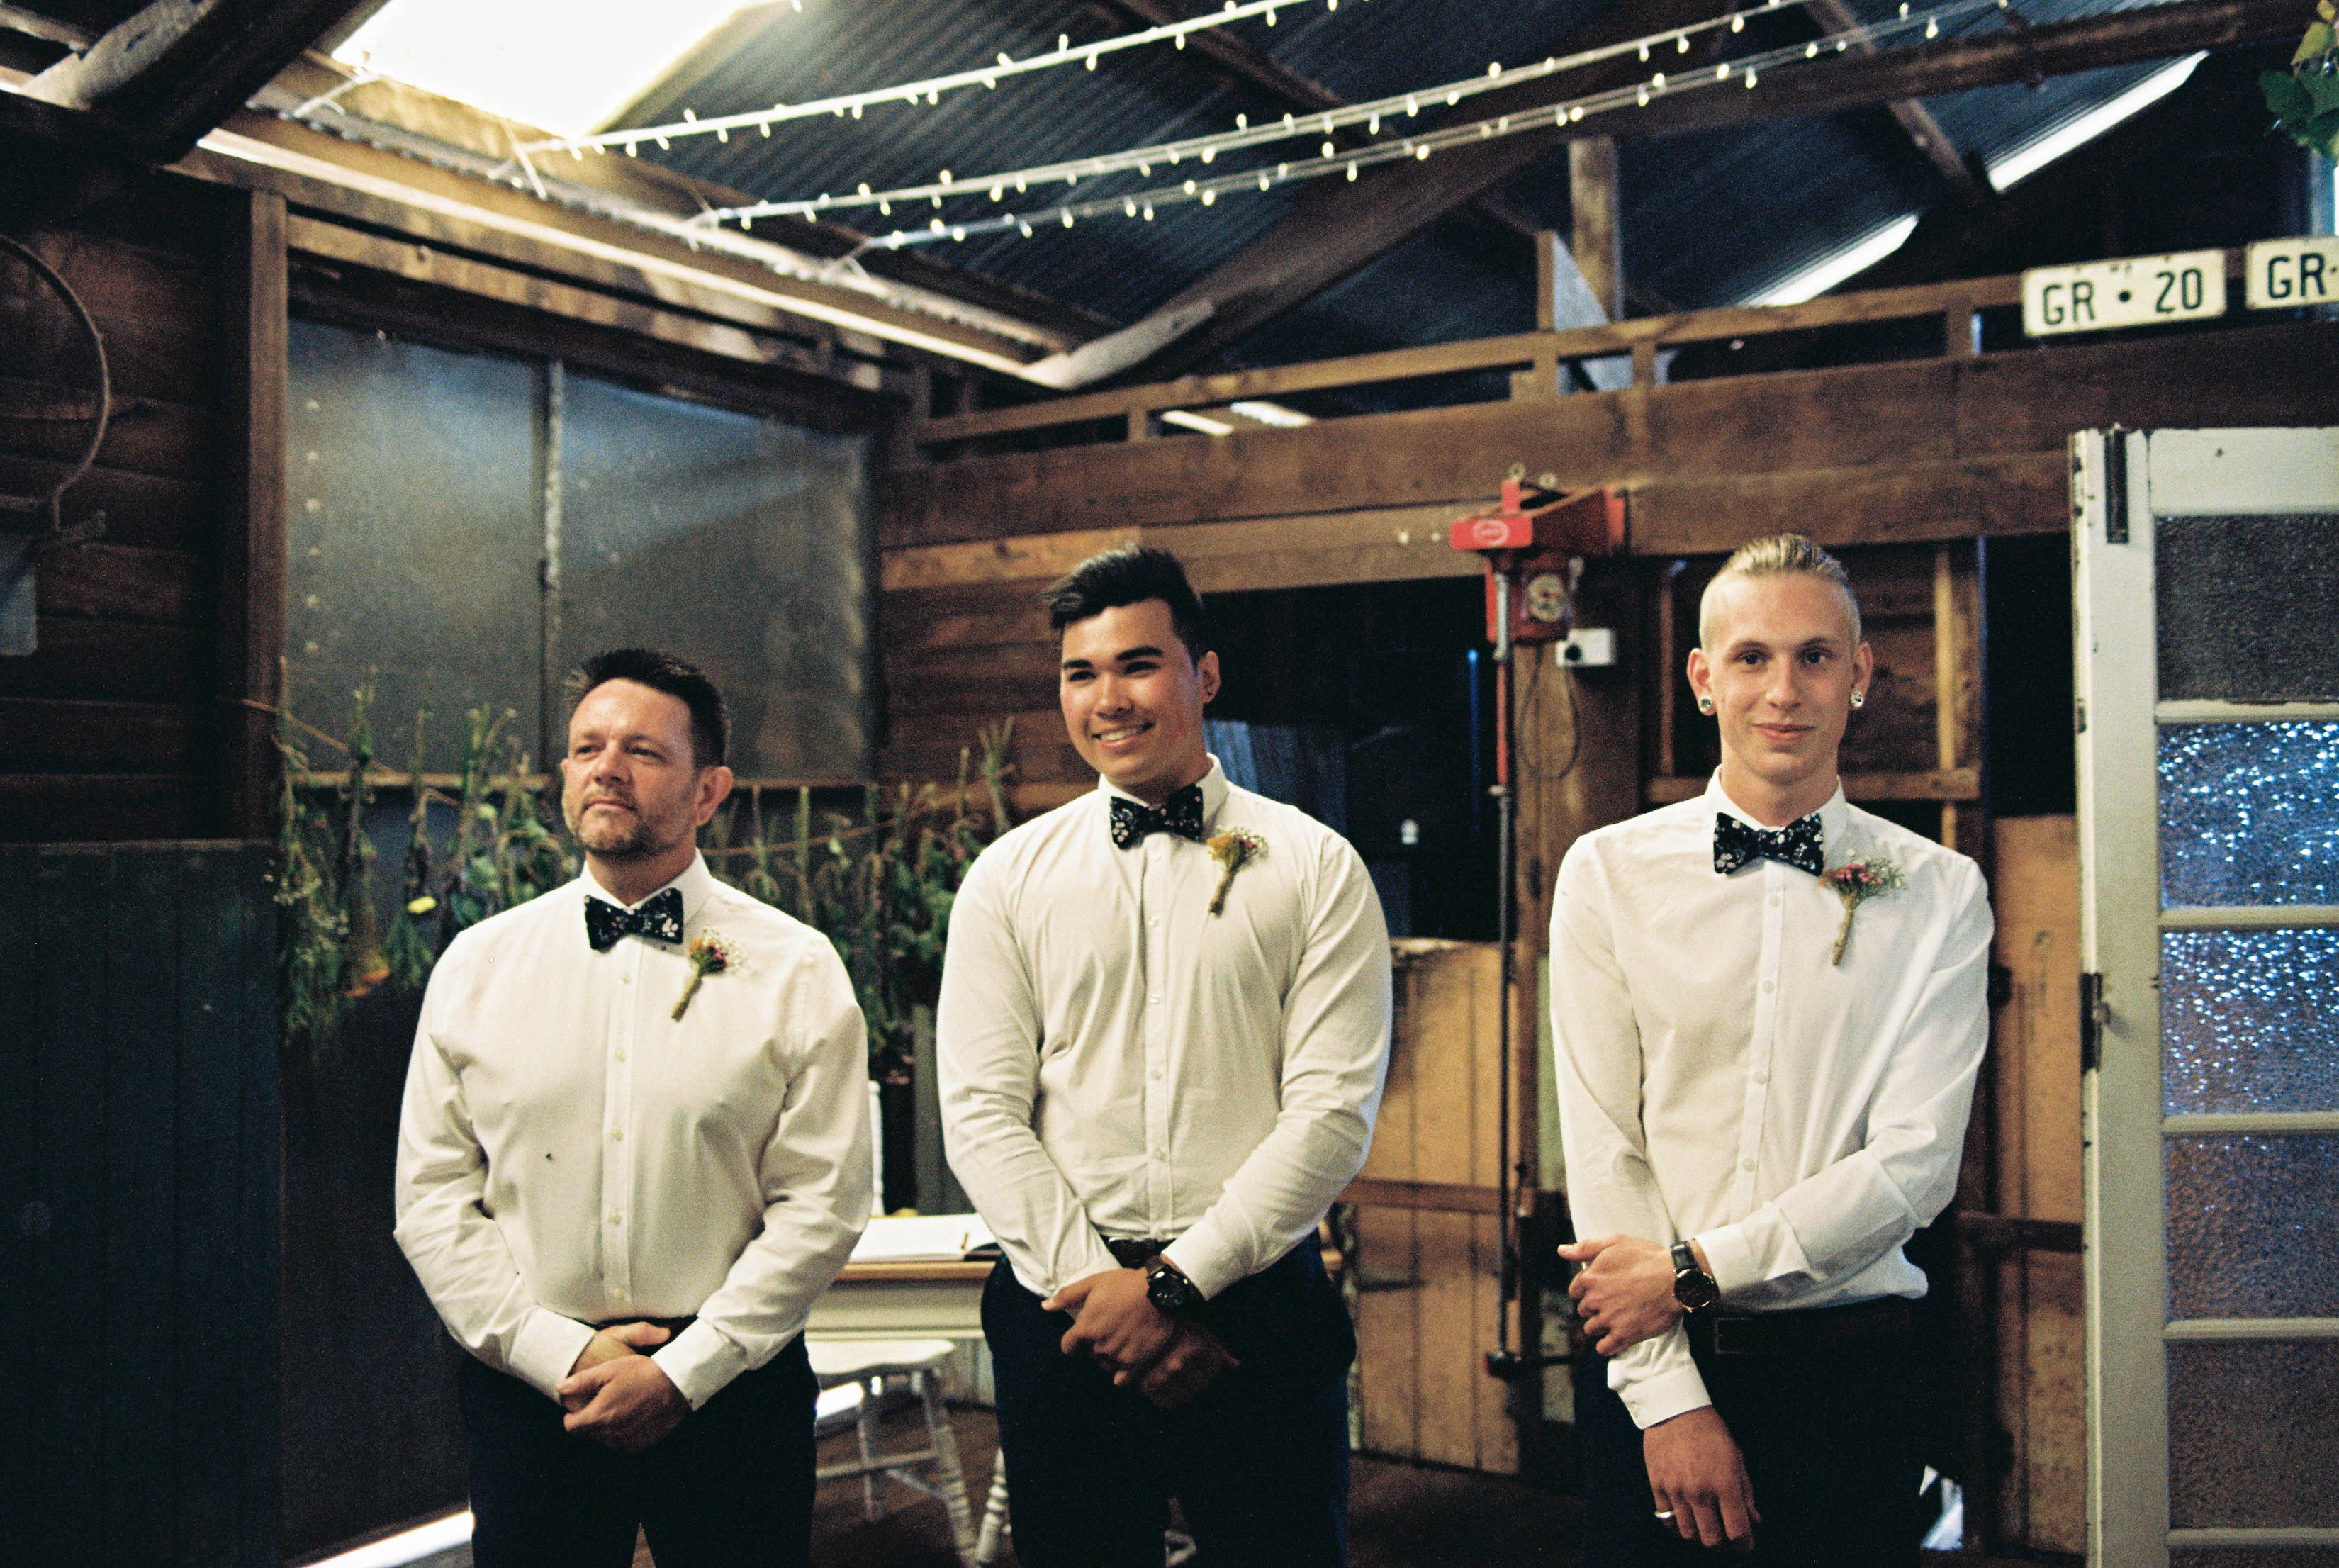 A photo of the groomsmen smiling at the beginning of the Shearing Shed Wedding Ceremony in the South West